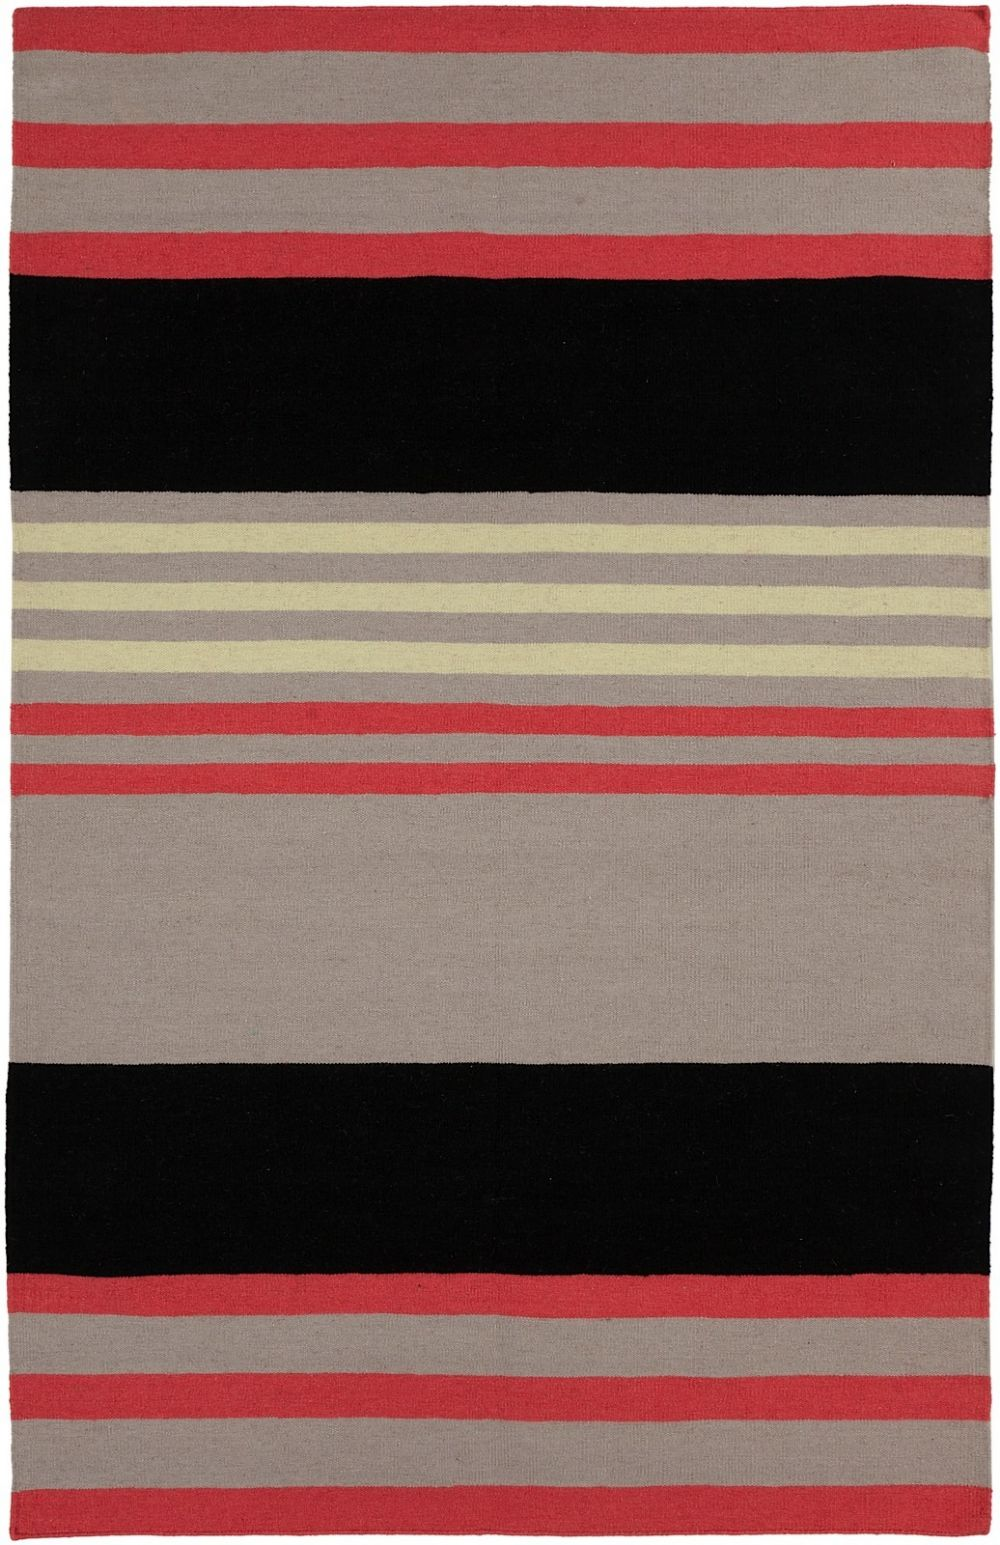 surya sheffield market solid/striped area rug collection